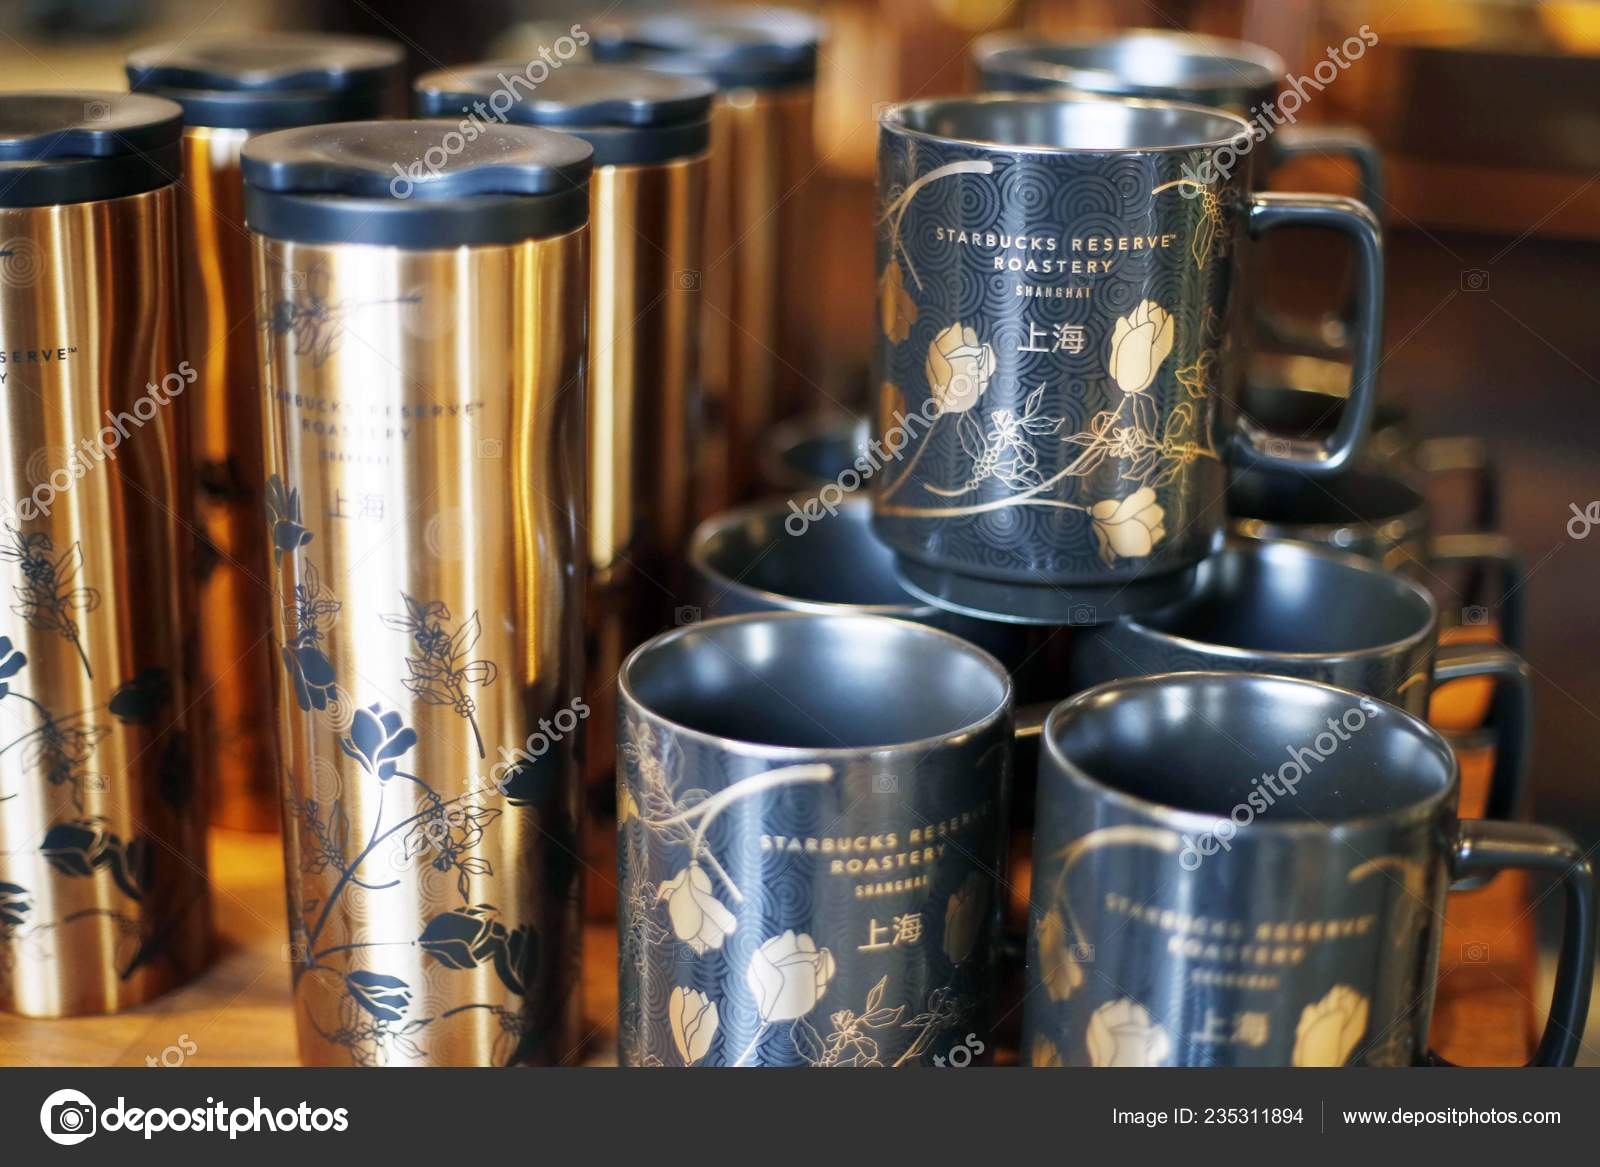 Cups Mugs Sale World Largest Starbucks Reserve Roastery Shanghai China Stock Editorial Photo C Chinaimages 235311894